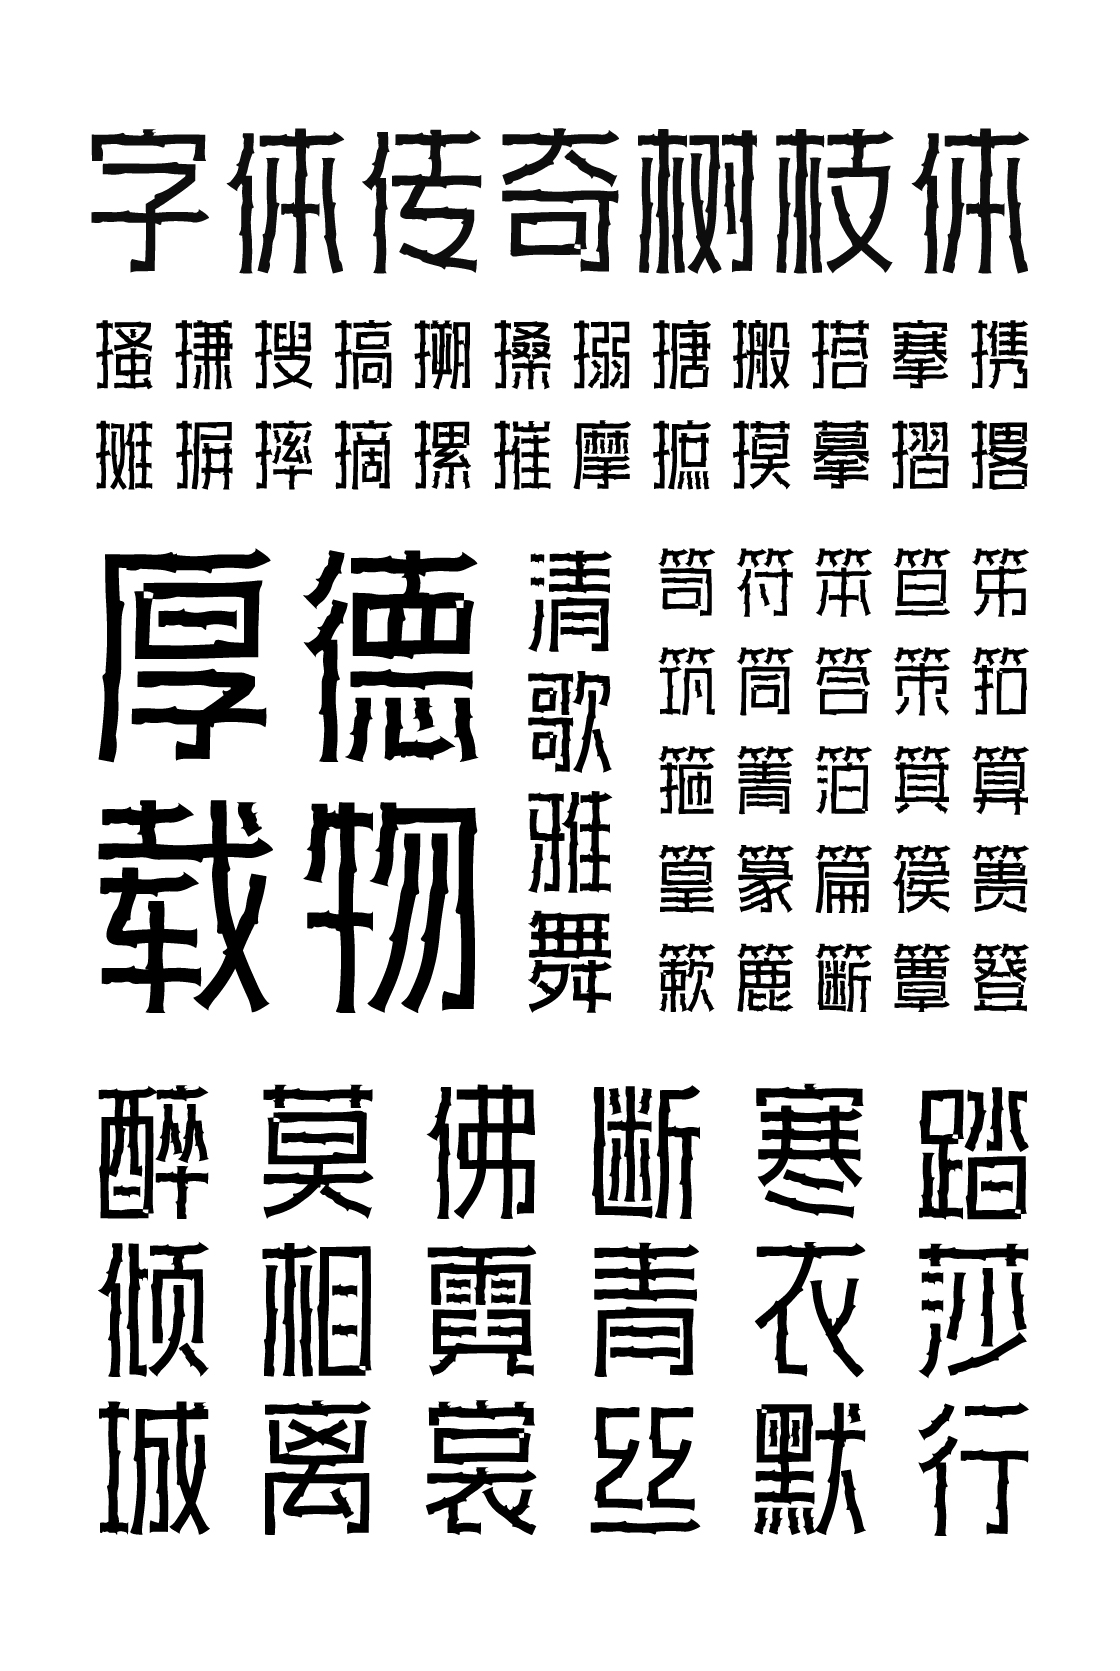 26P Collection of the latest Chinese font design schemes in 2021 #.297